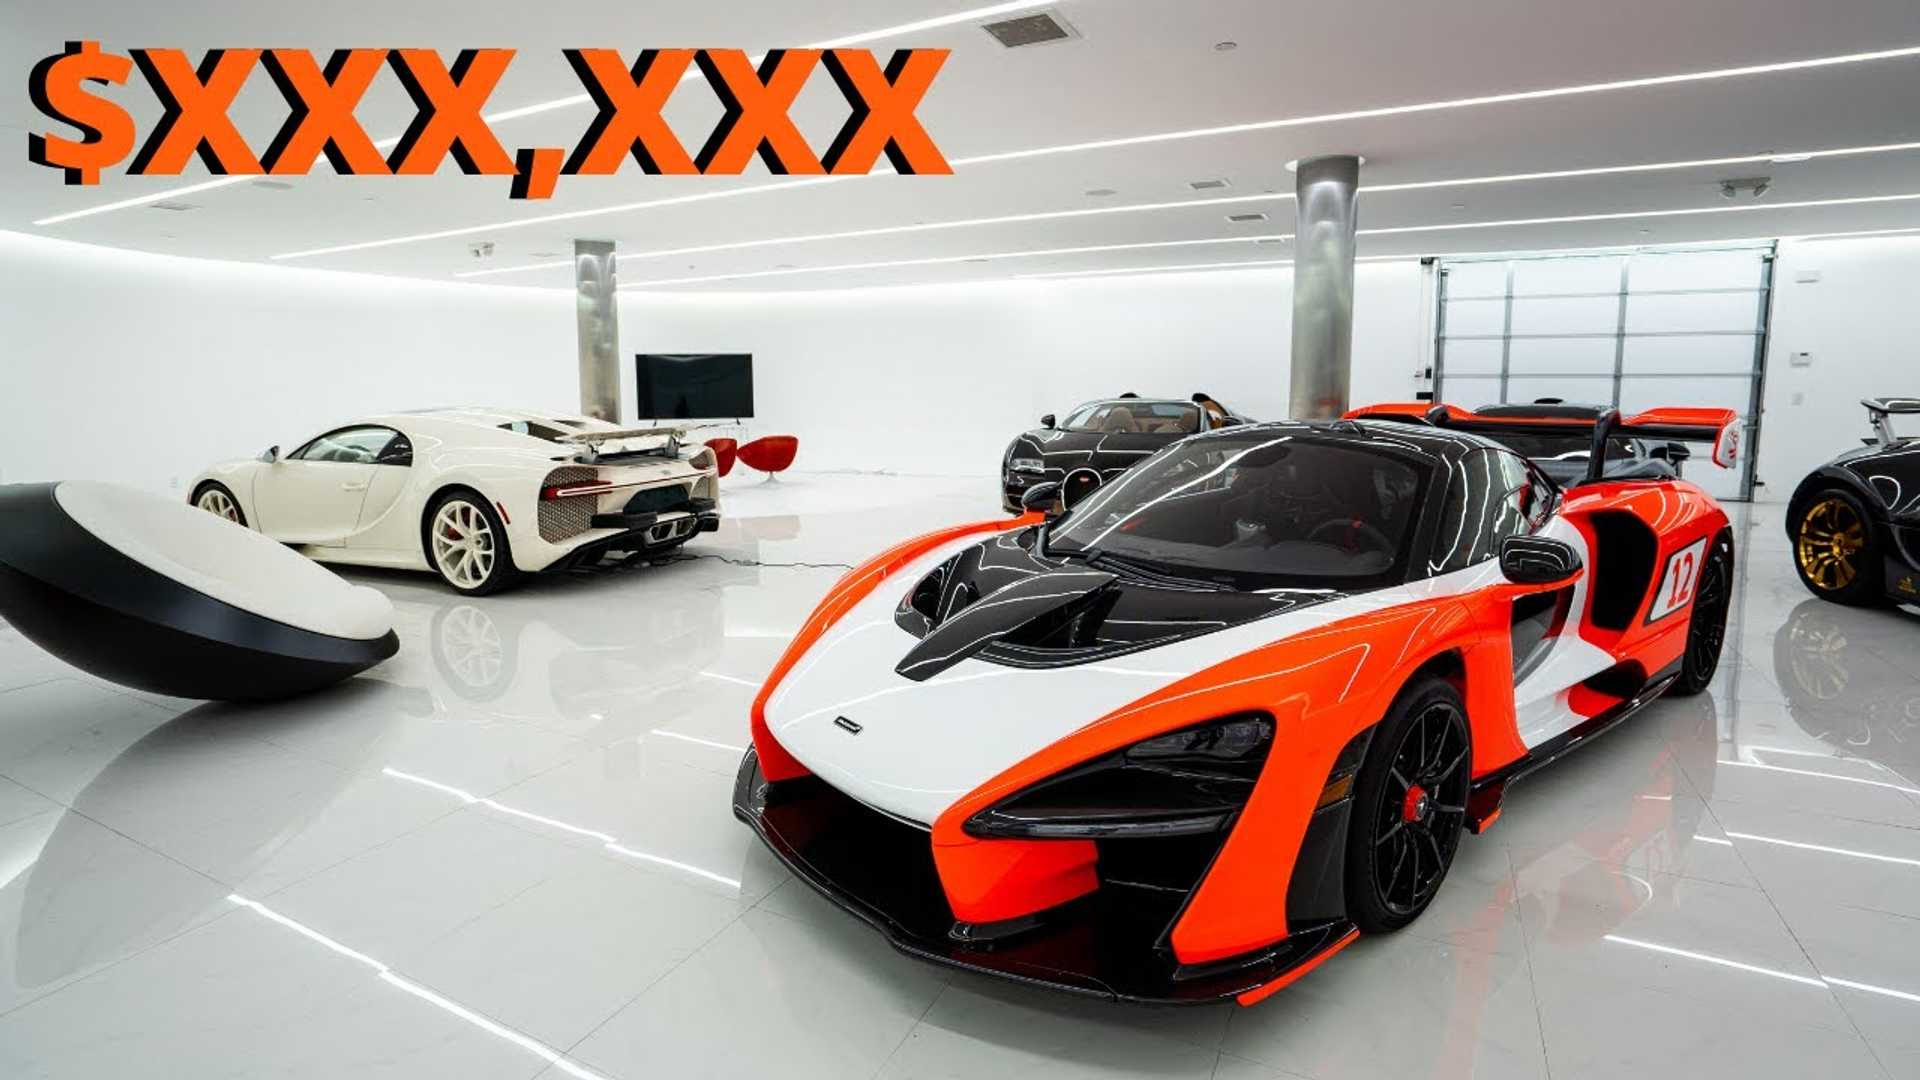 Supercar Collector Reveals Insane Cost To Maintain Collection